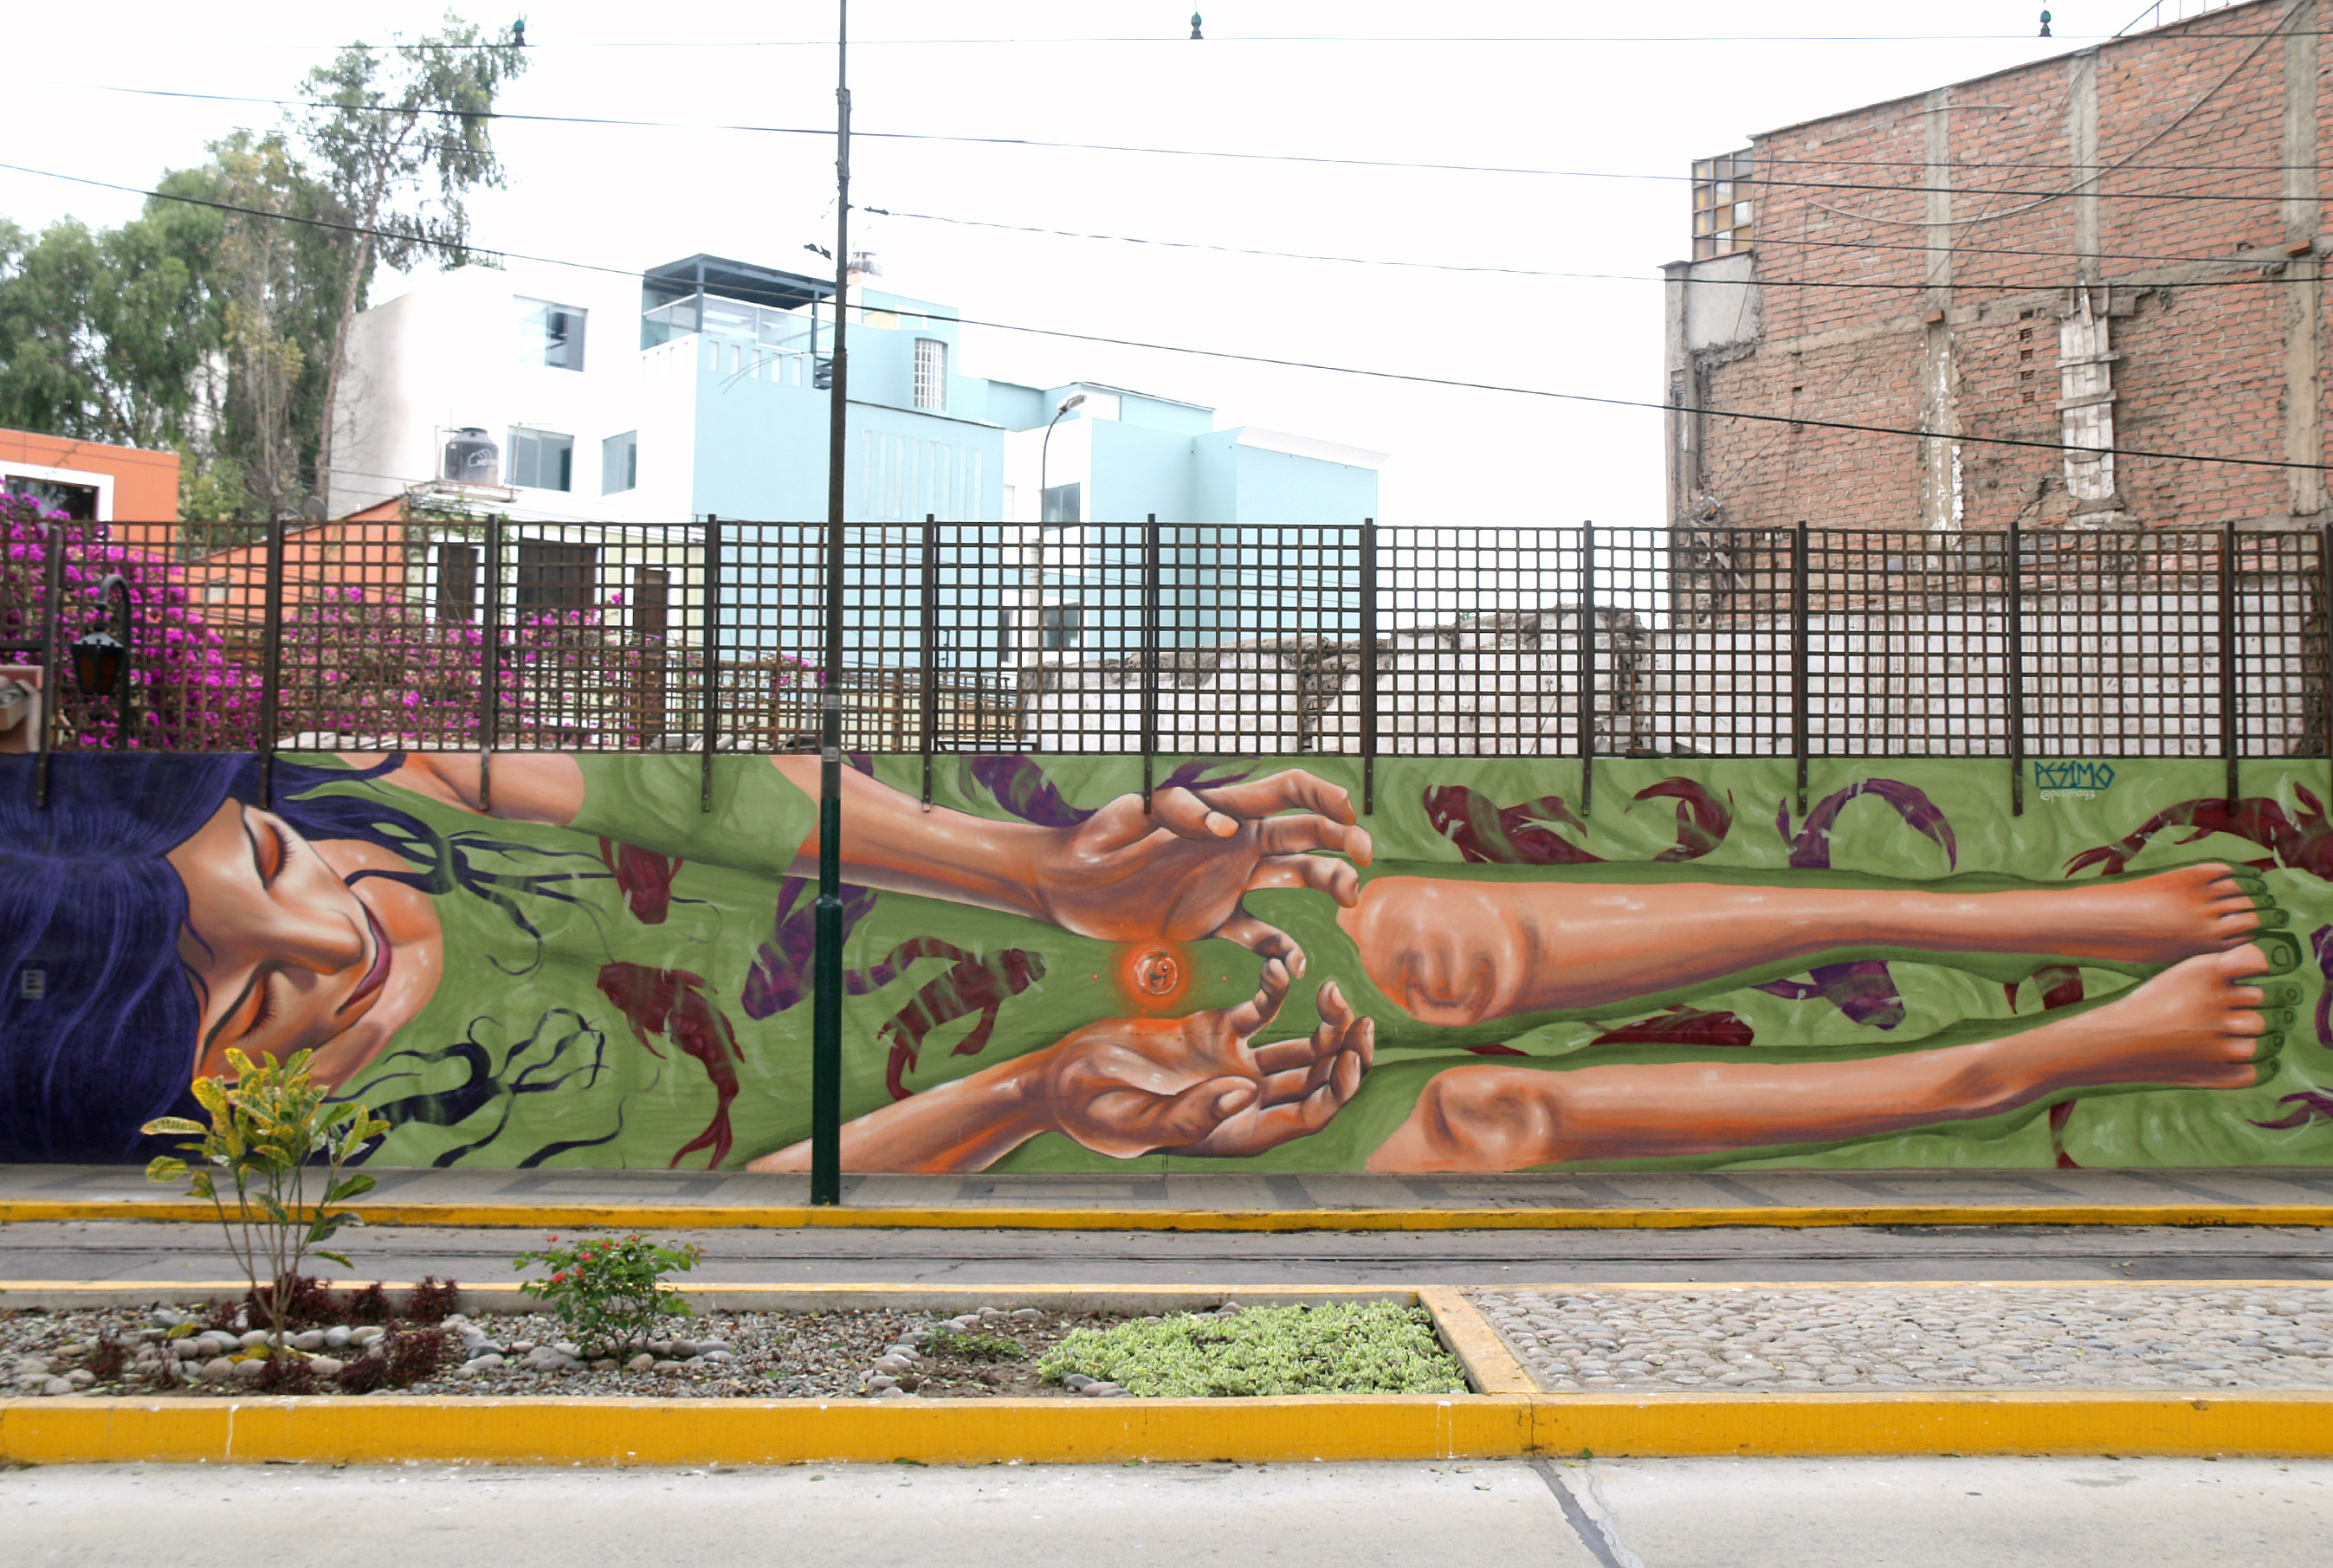 where to to find street art in Barranco, Lima on av. Pedro de Osma, mural by Pésimo